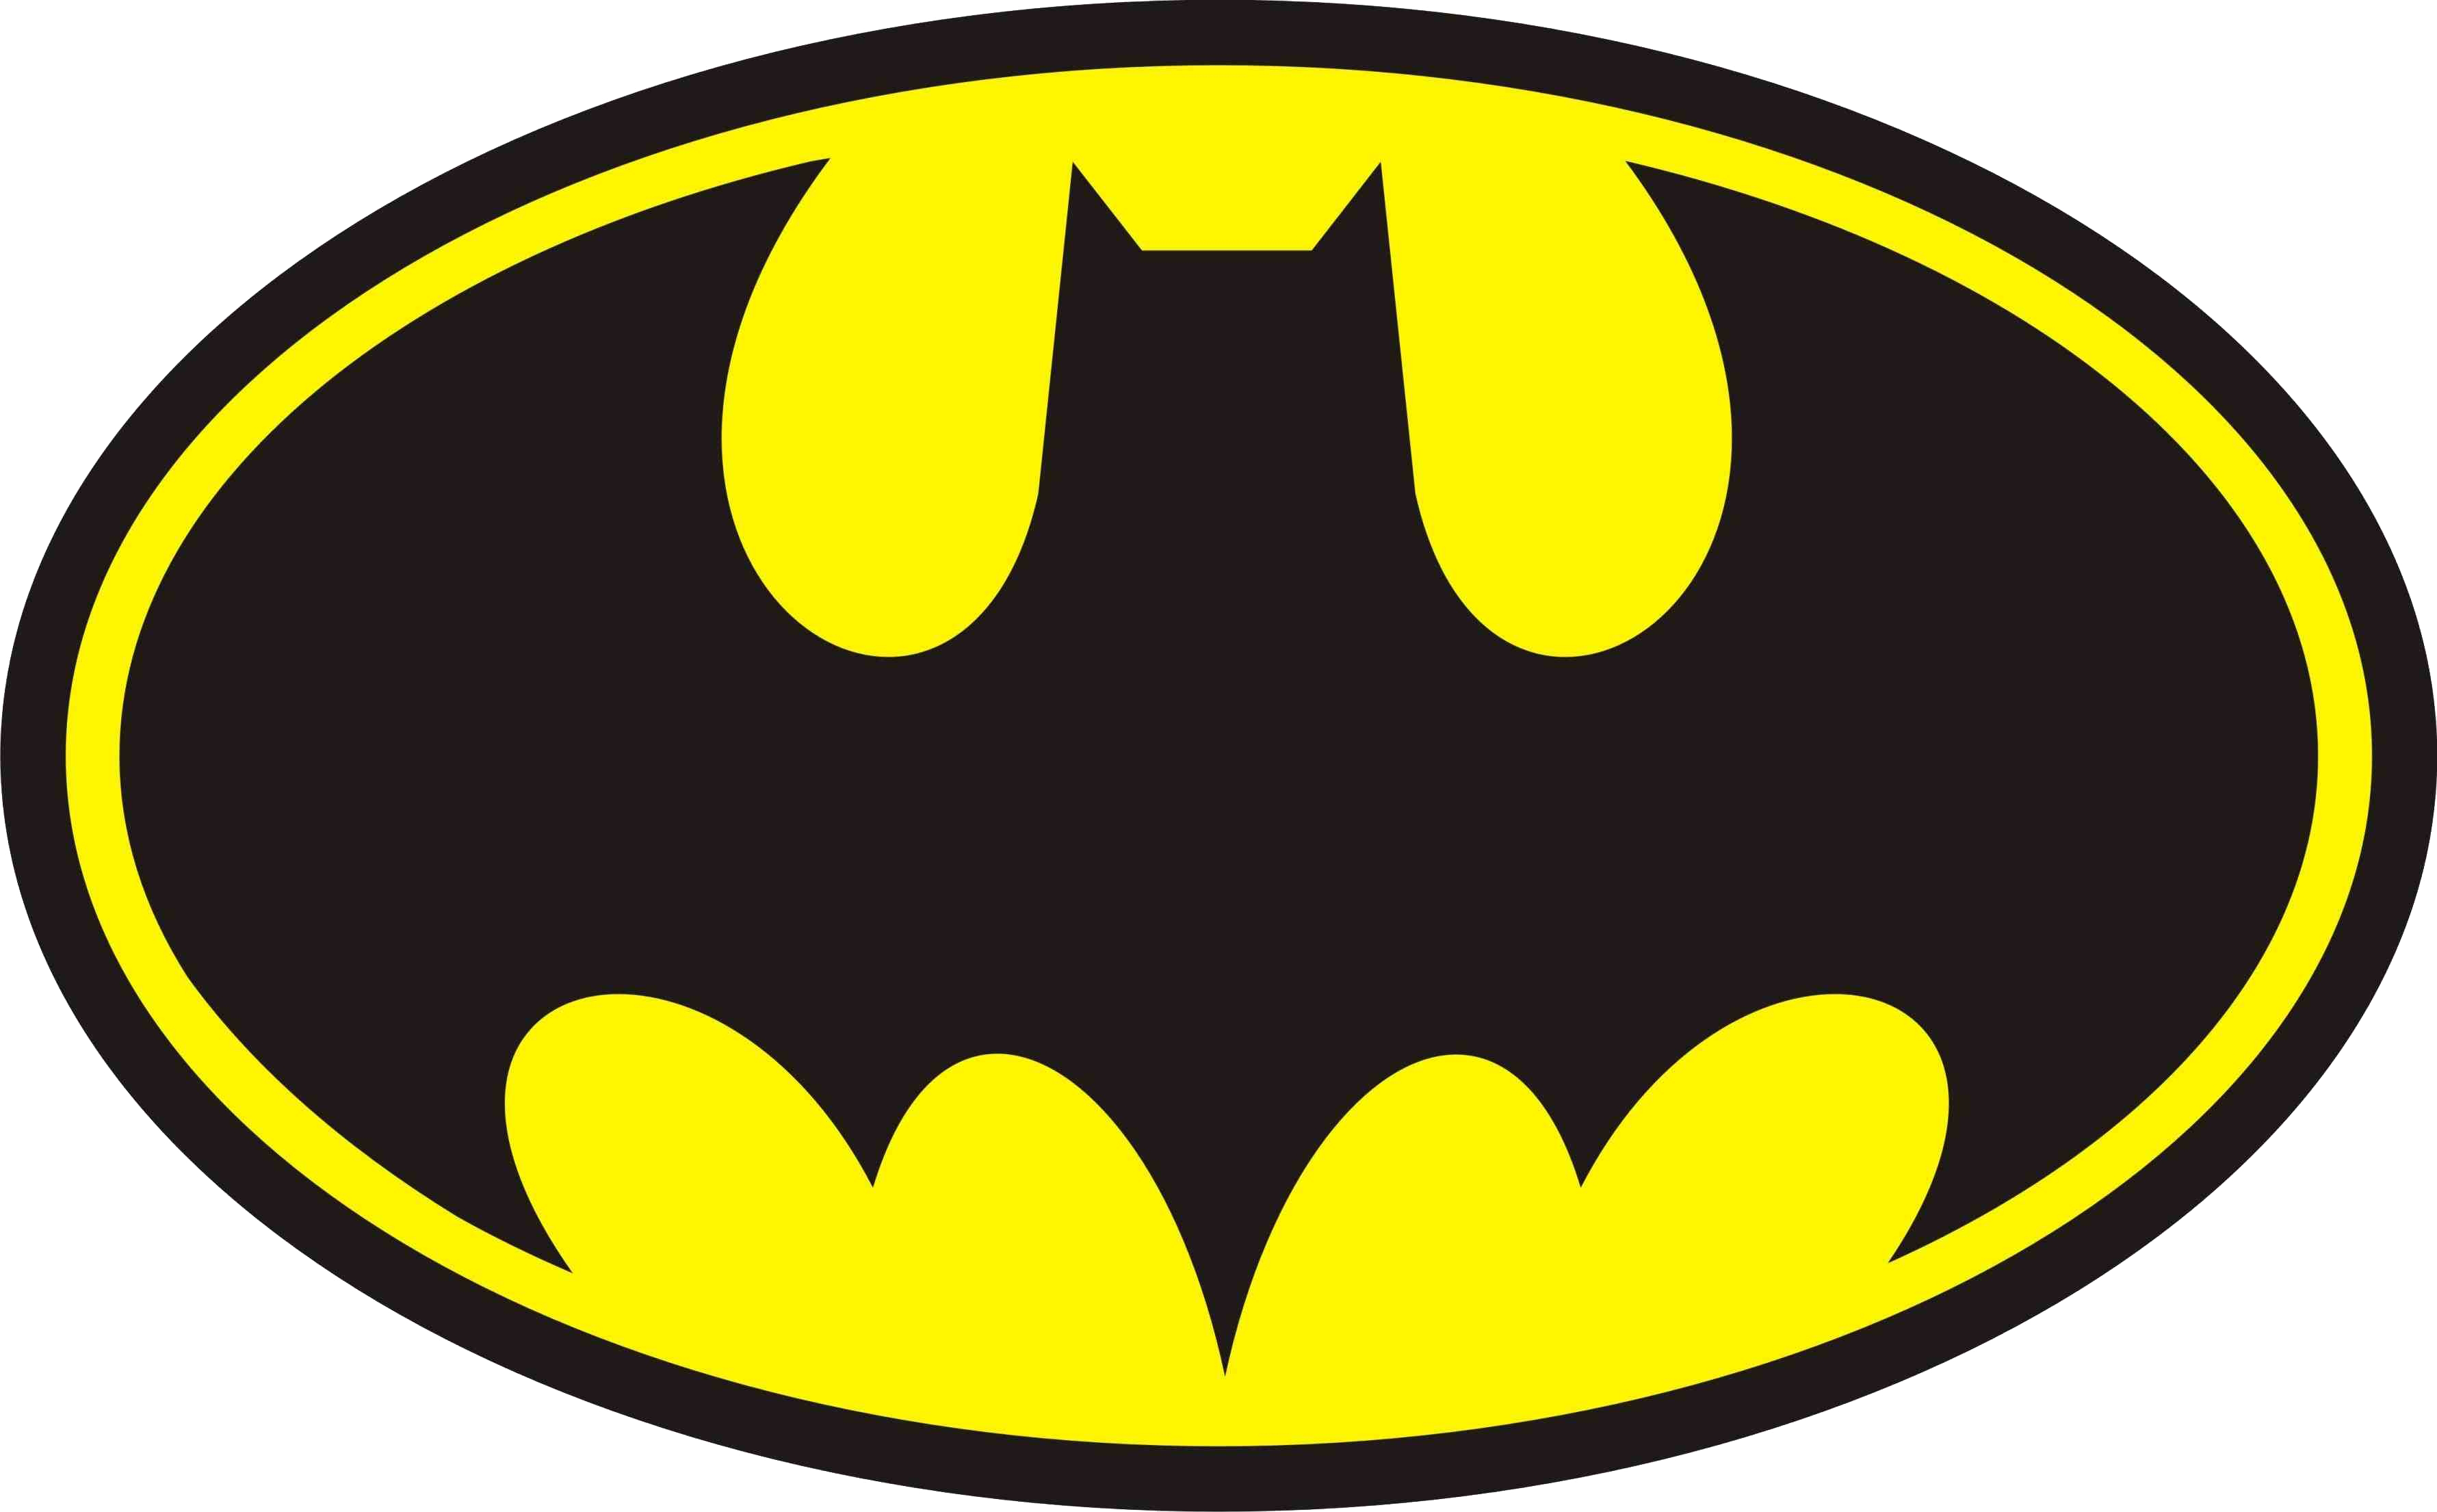 Batman clipart clipart freeuse Batman Clipart for printable to – Free Clipart Images clipart freeuse